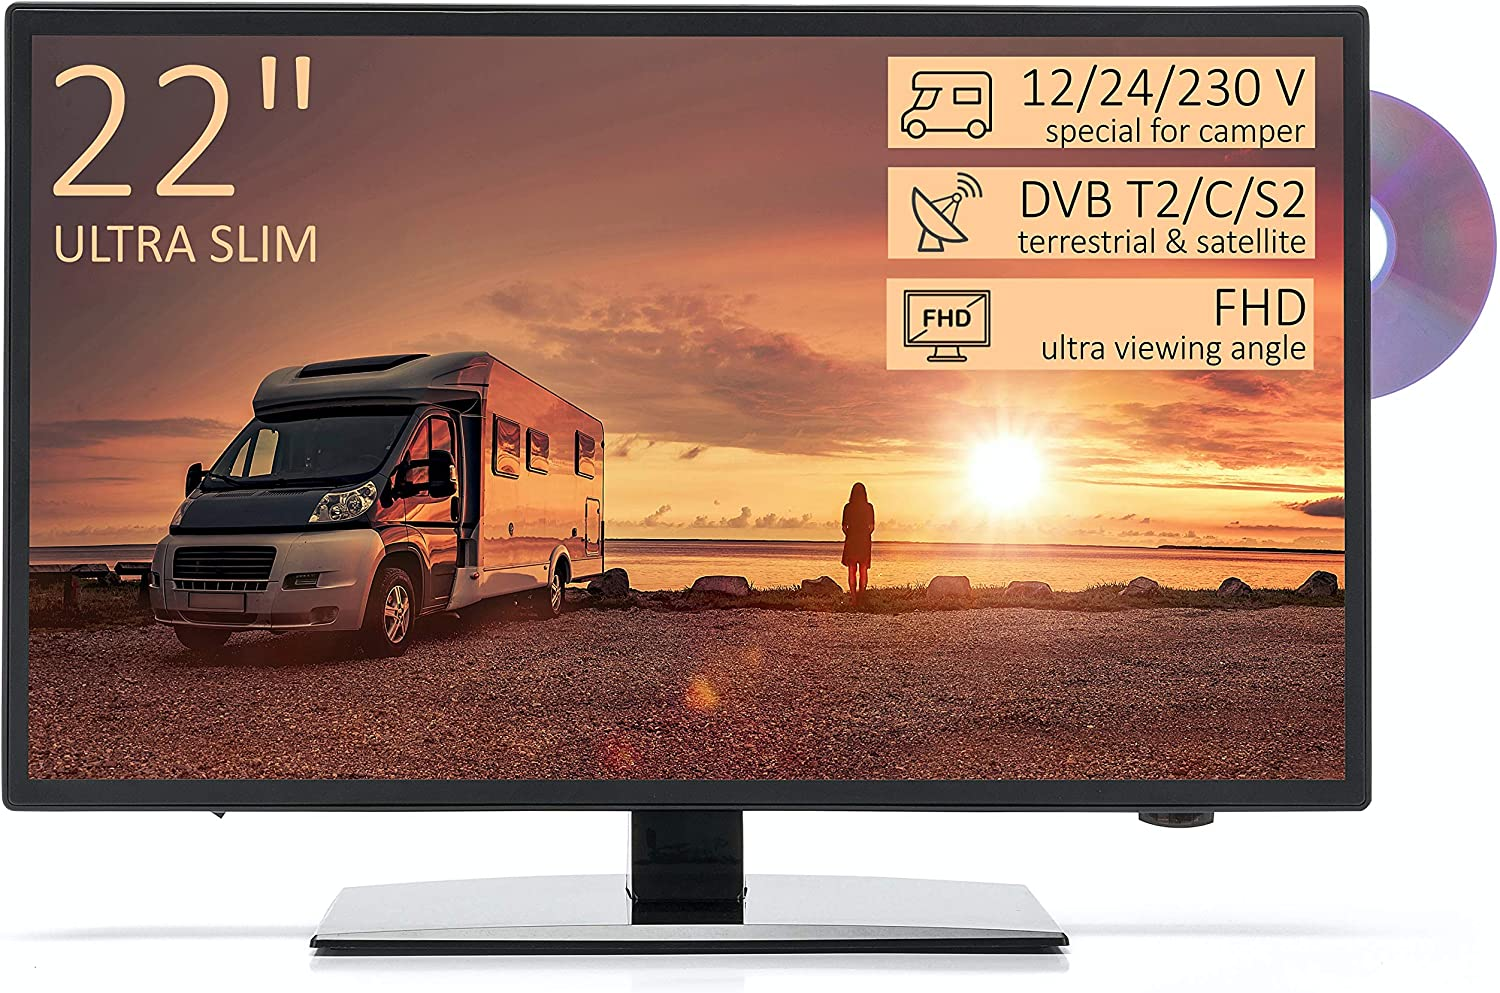 TV Full HD 22